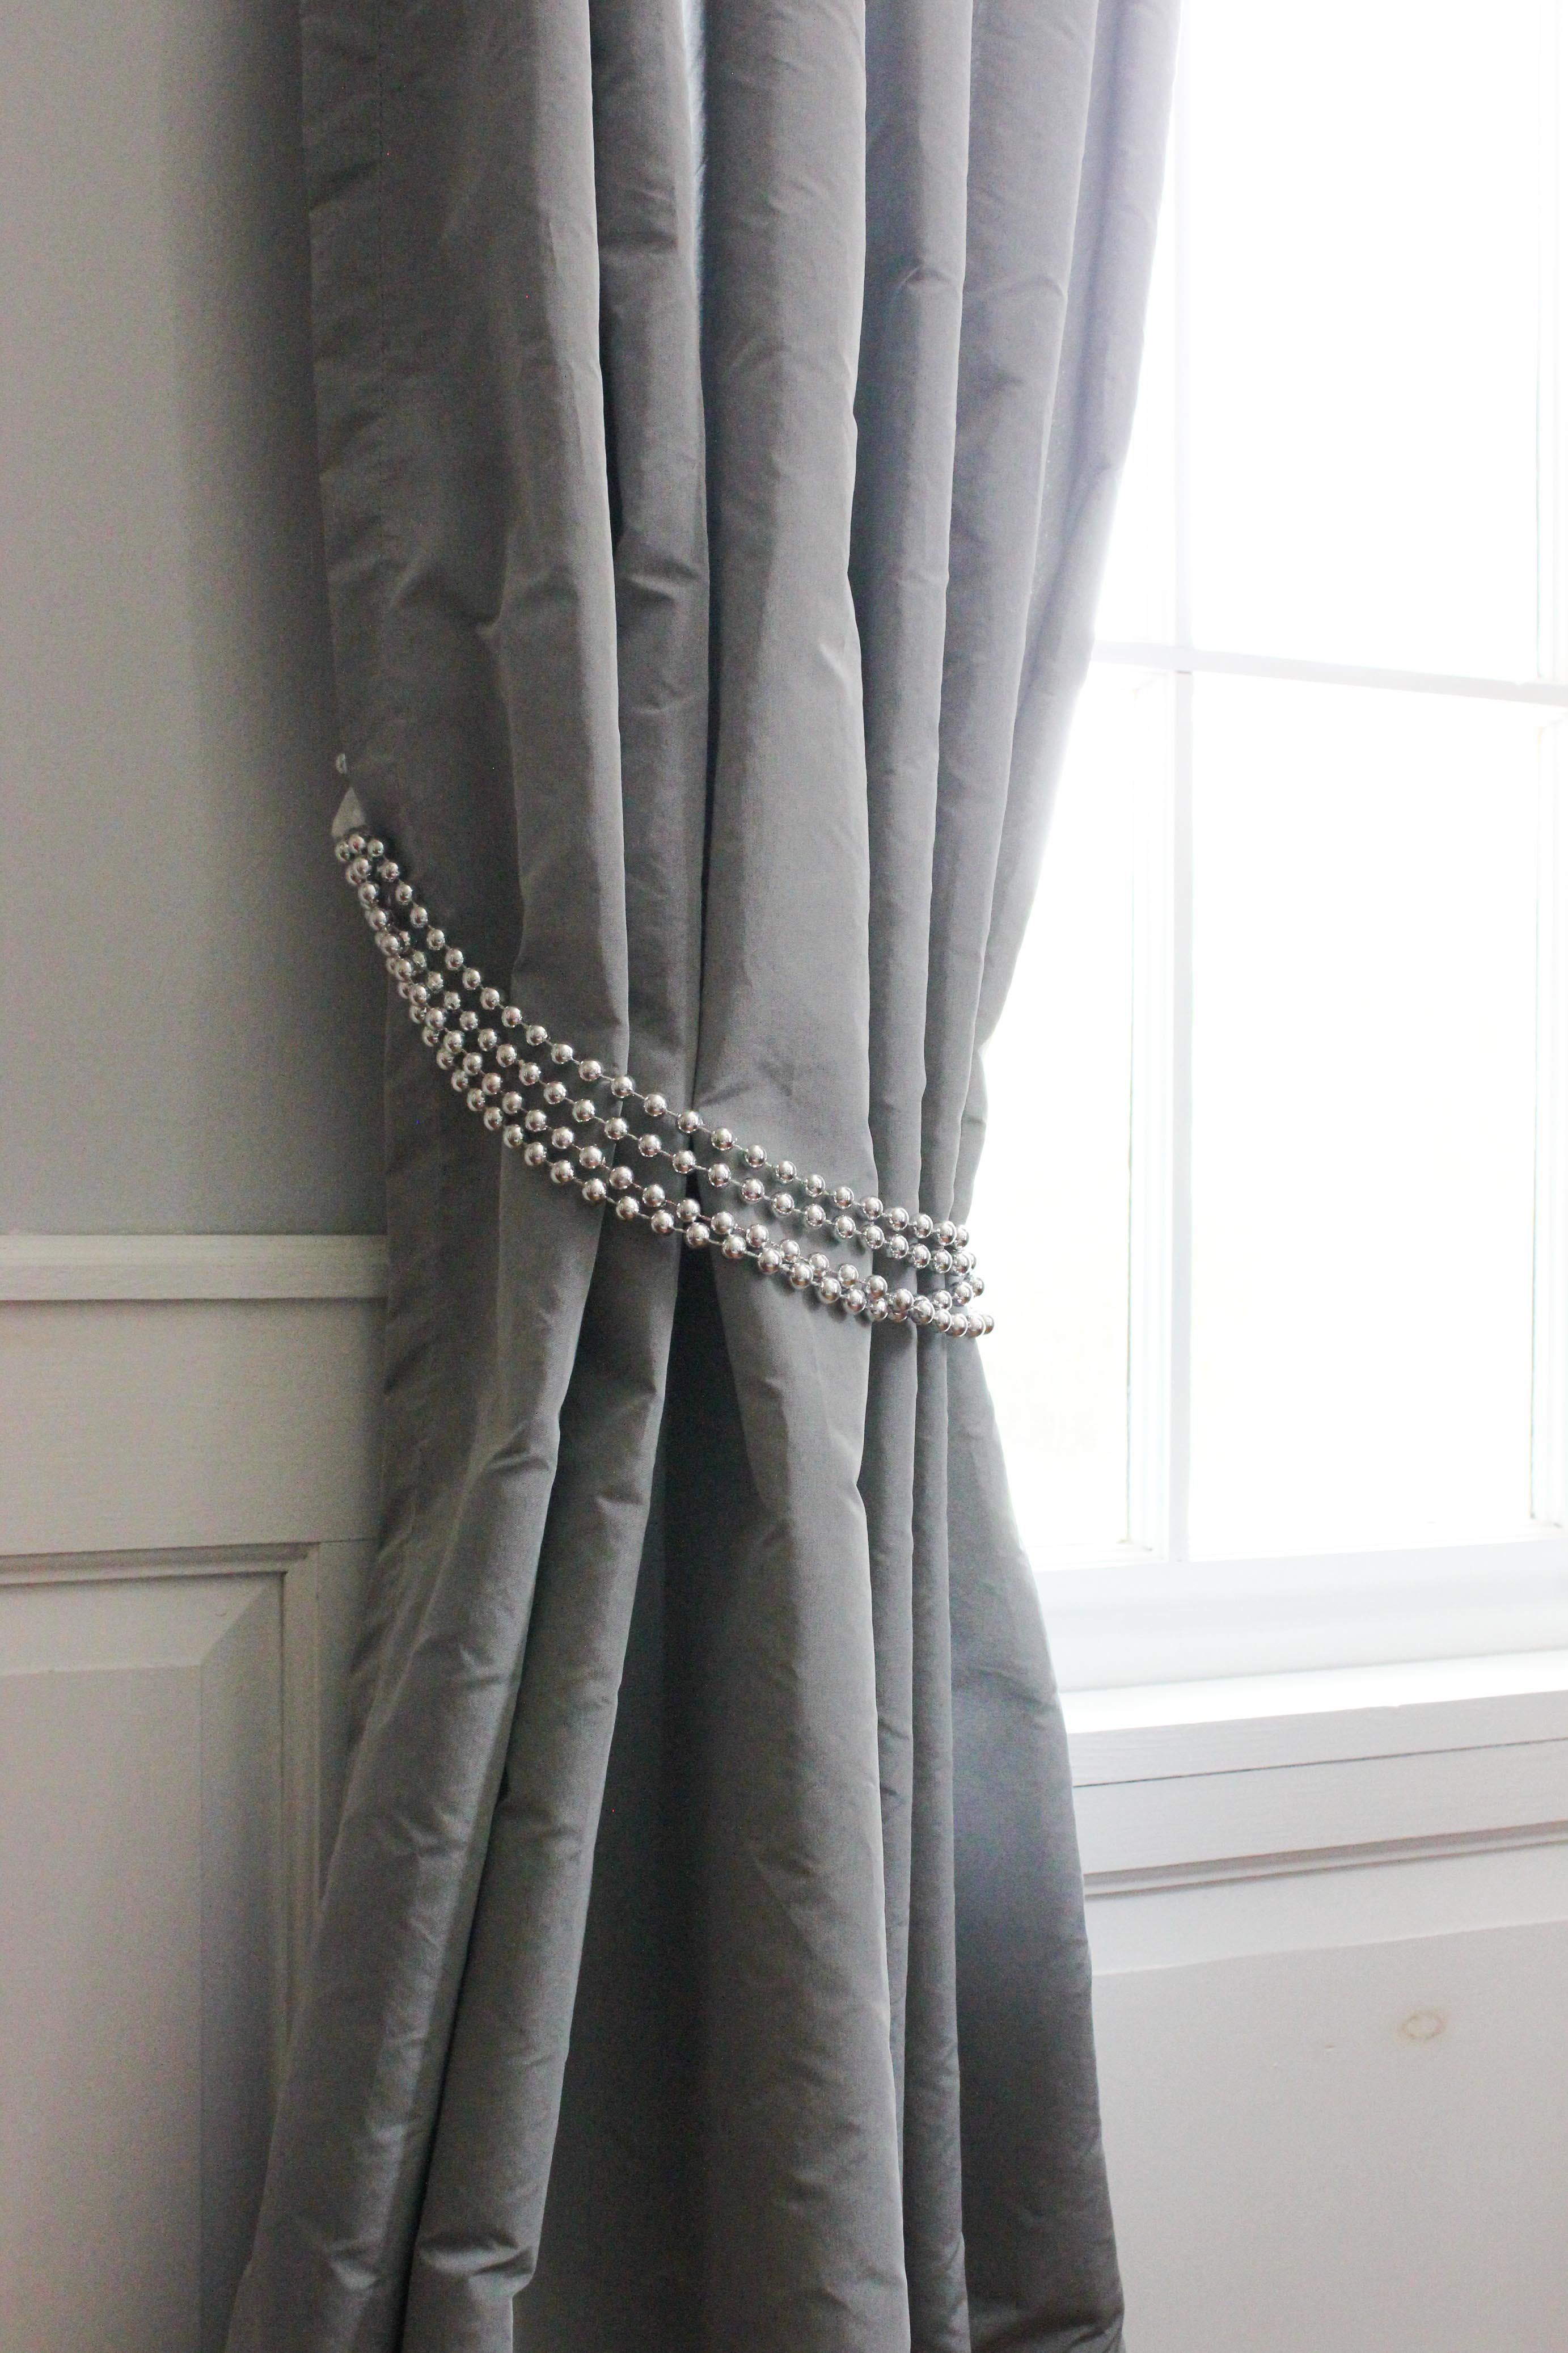 Best ideas about DIY Curtain Tie Back . Save or Pin DIY Decorative Curtain Tie Backs Now.